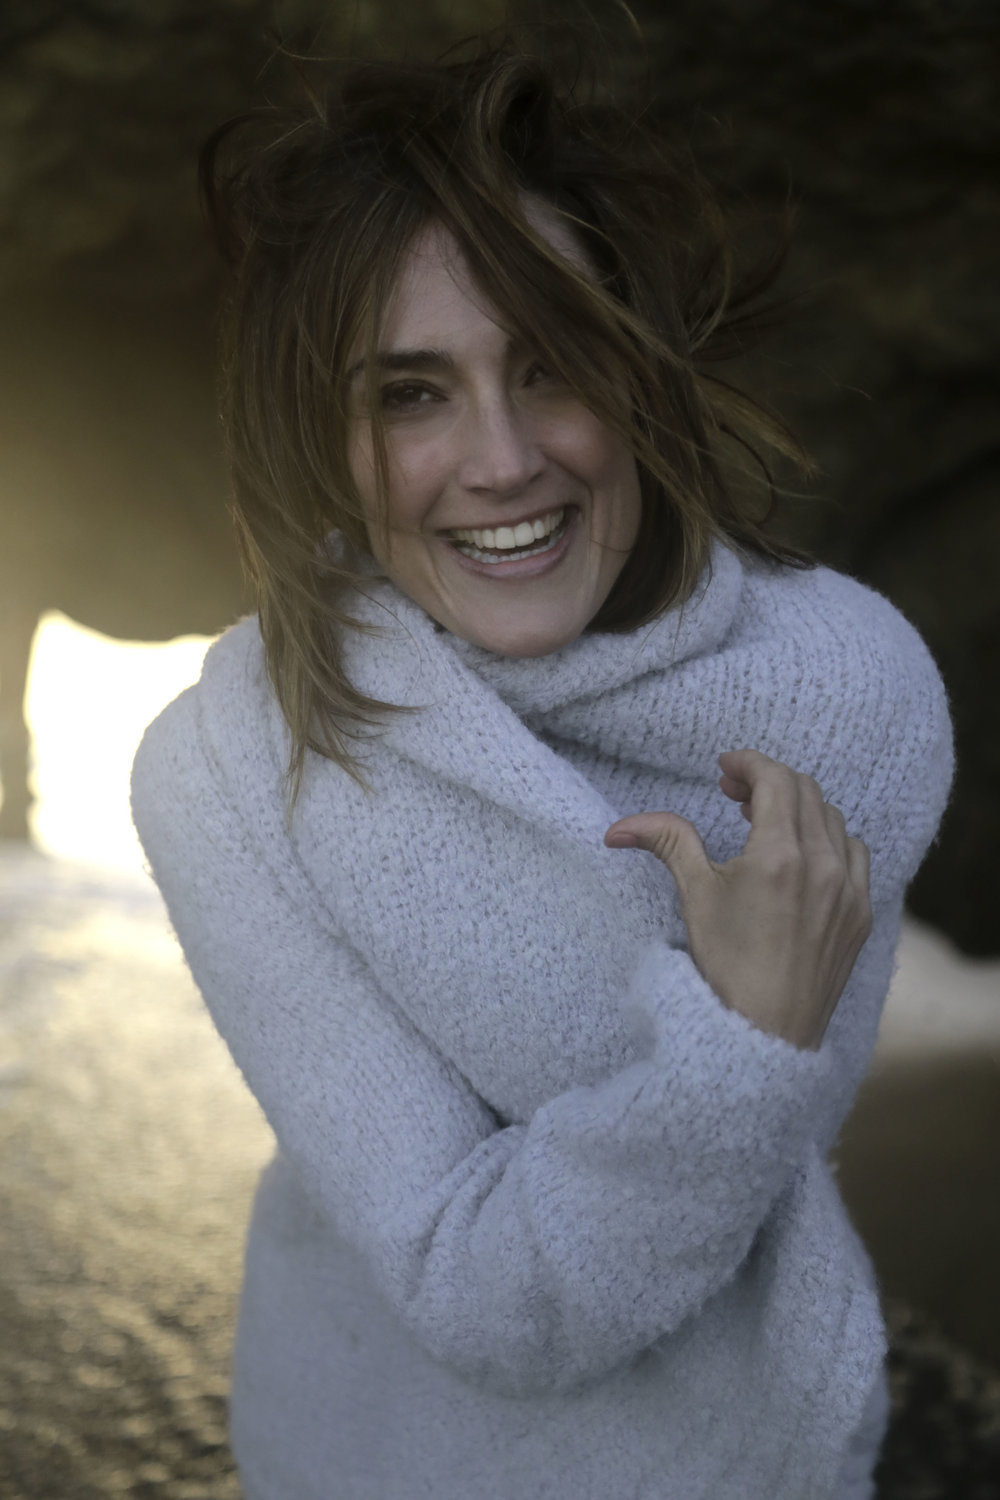 Elisabeth makes you feel really at ease when she has her lens on you. Alex Dawson, Yoga Instructor